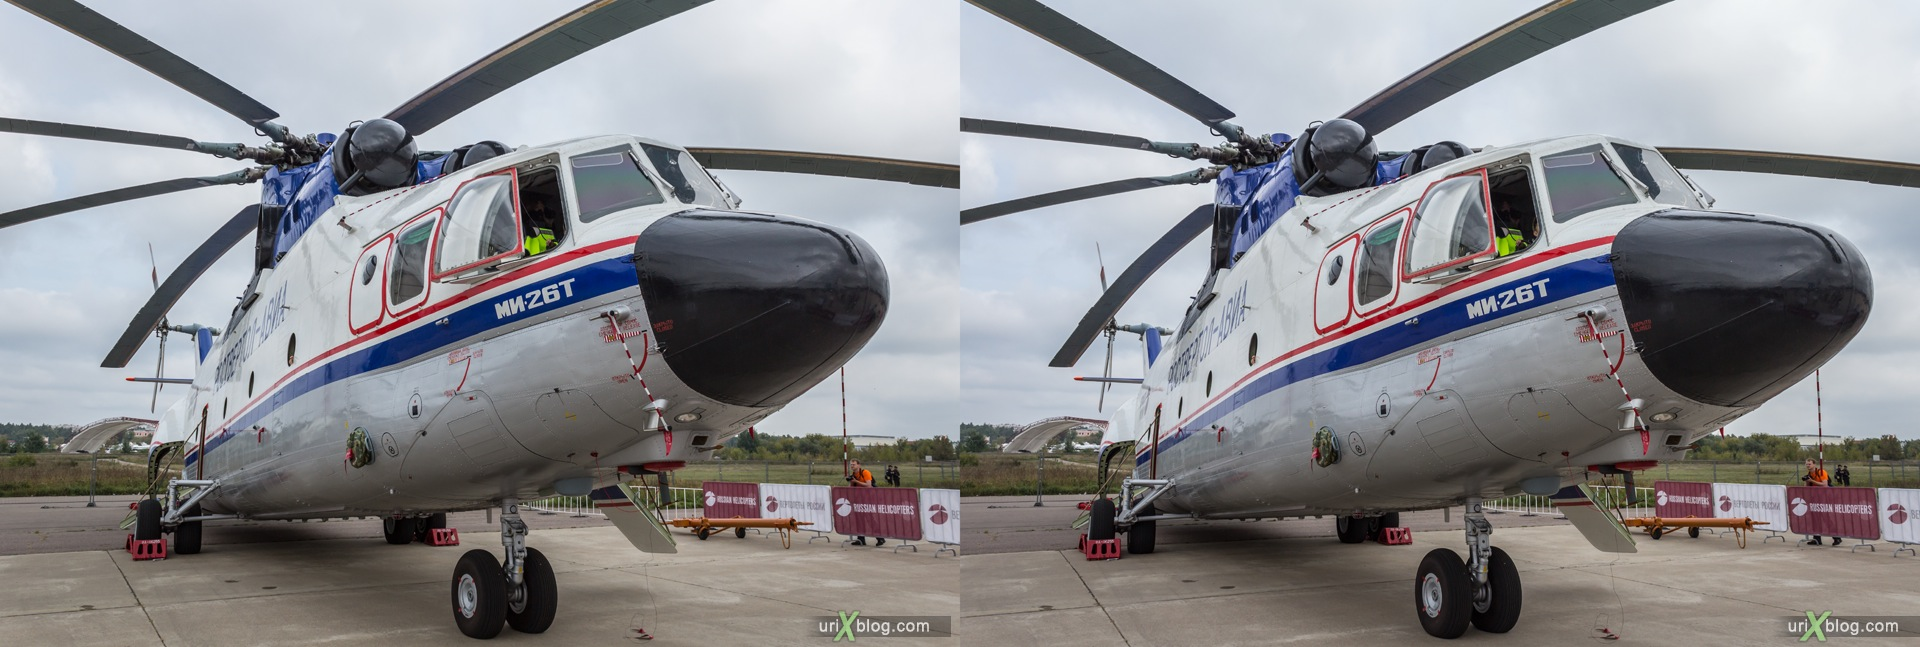 2013, MAKS, International Aviation and Space Salon, Russia, Ramenskoye airfield, Mi-26T, helicopter, 3D, stereo pair, cross-eyed, crossview, cross view stereo pair, stereoscopic